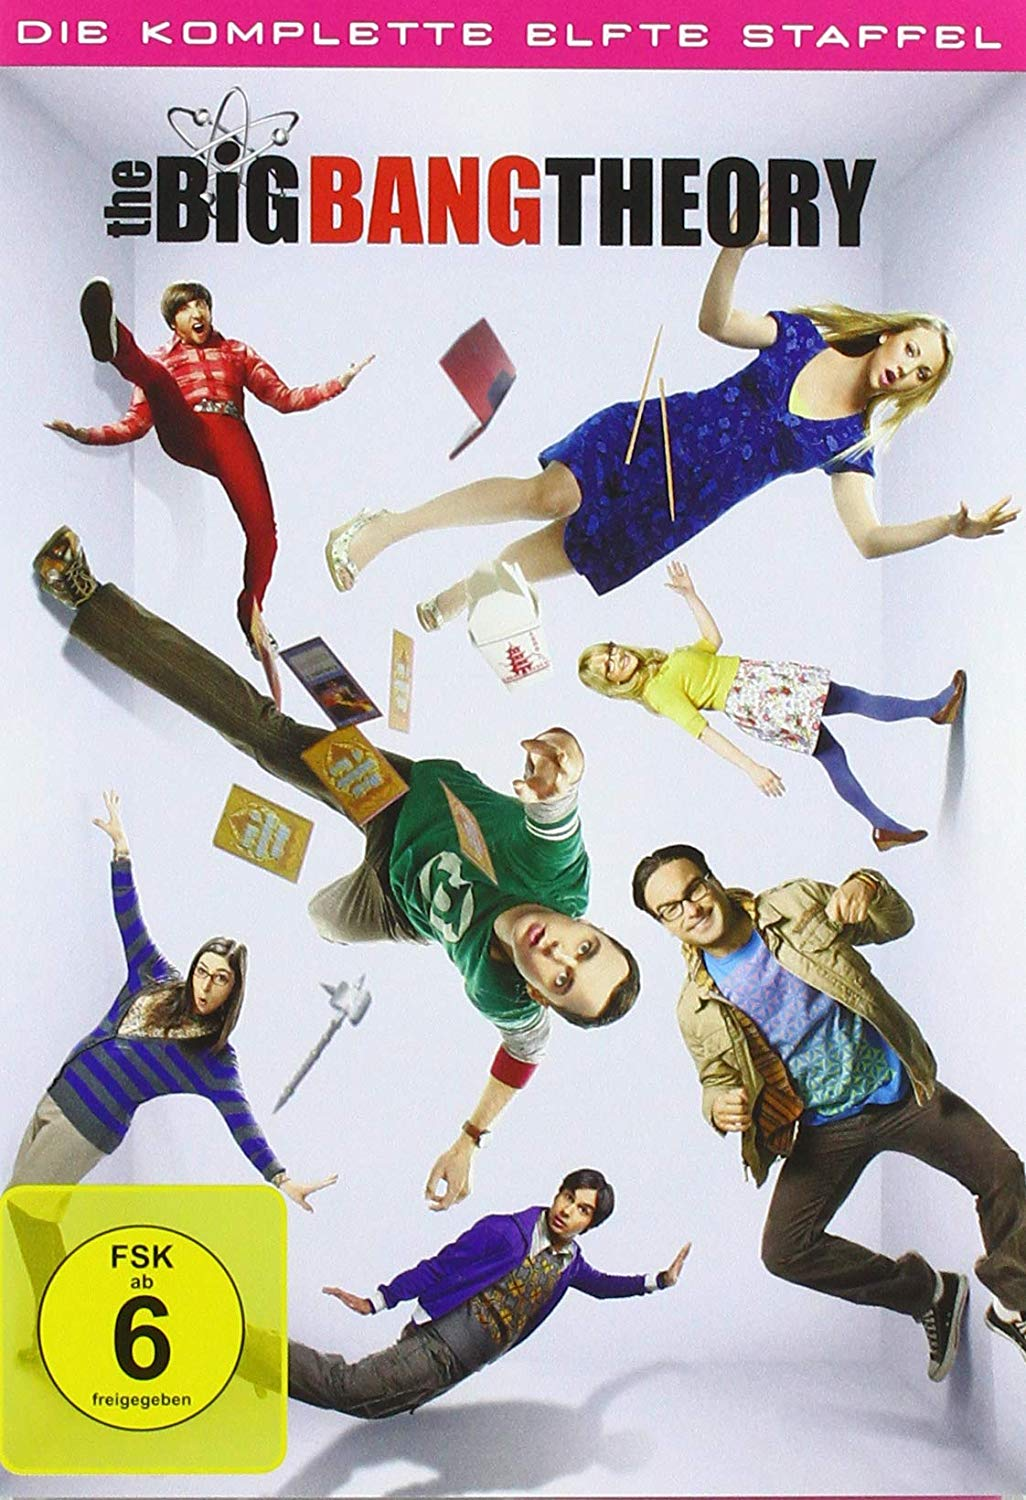 The Big Bang Theory - Die komplette elfte Staffel bei Amazon bestellen